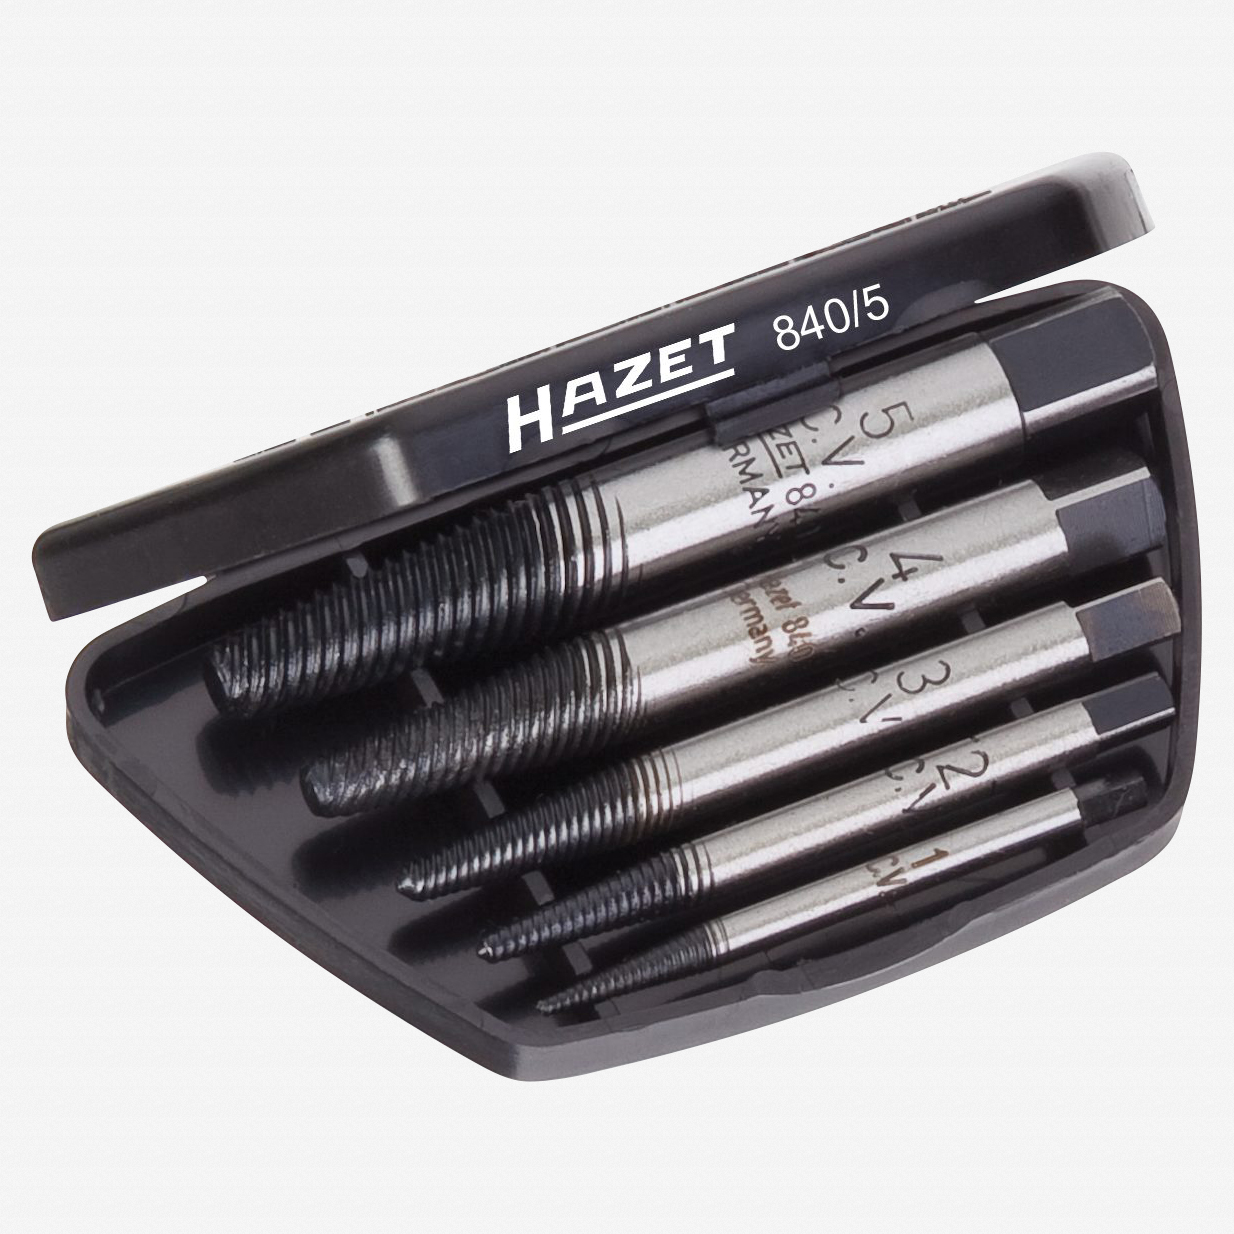 Hazet 840/5 Screw extractor set  - KC Tool